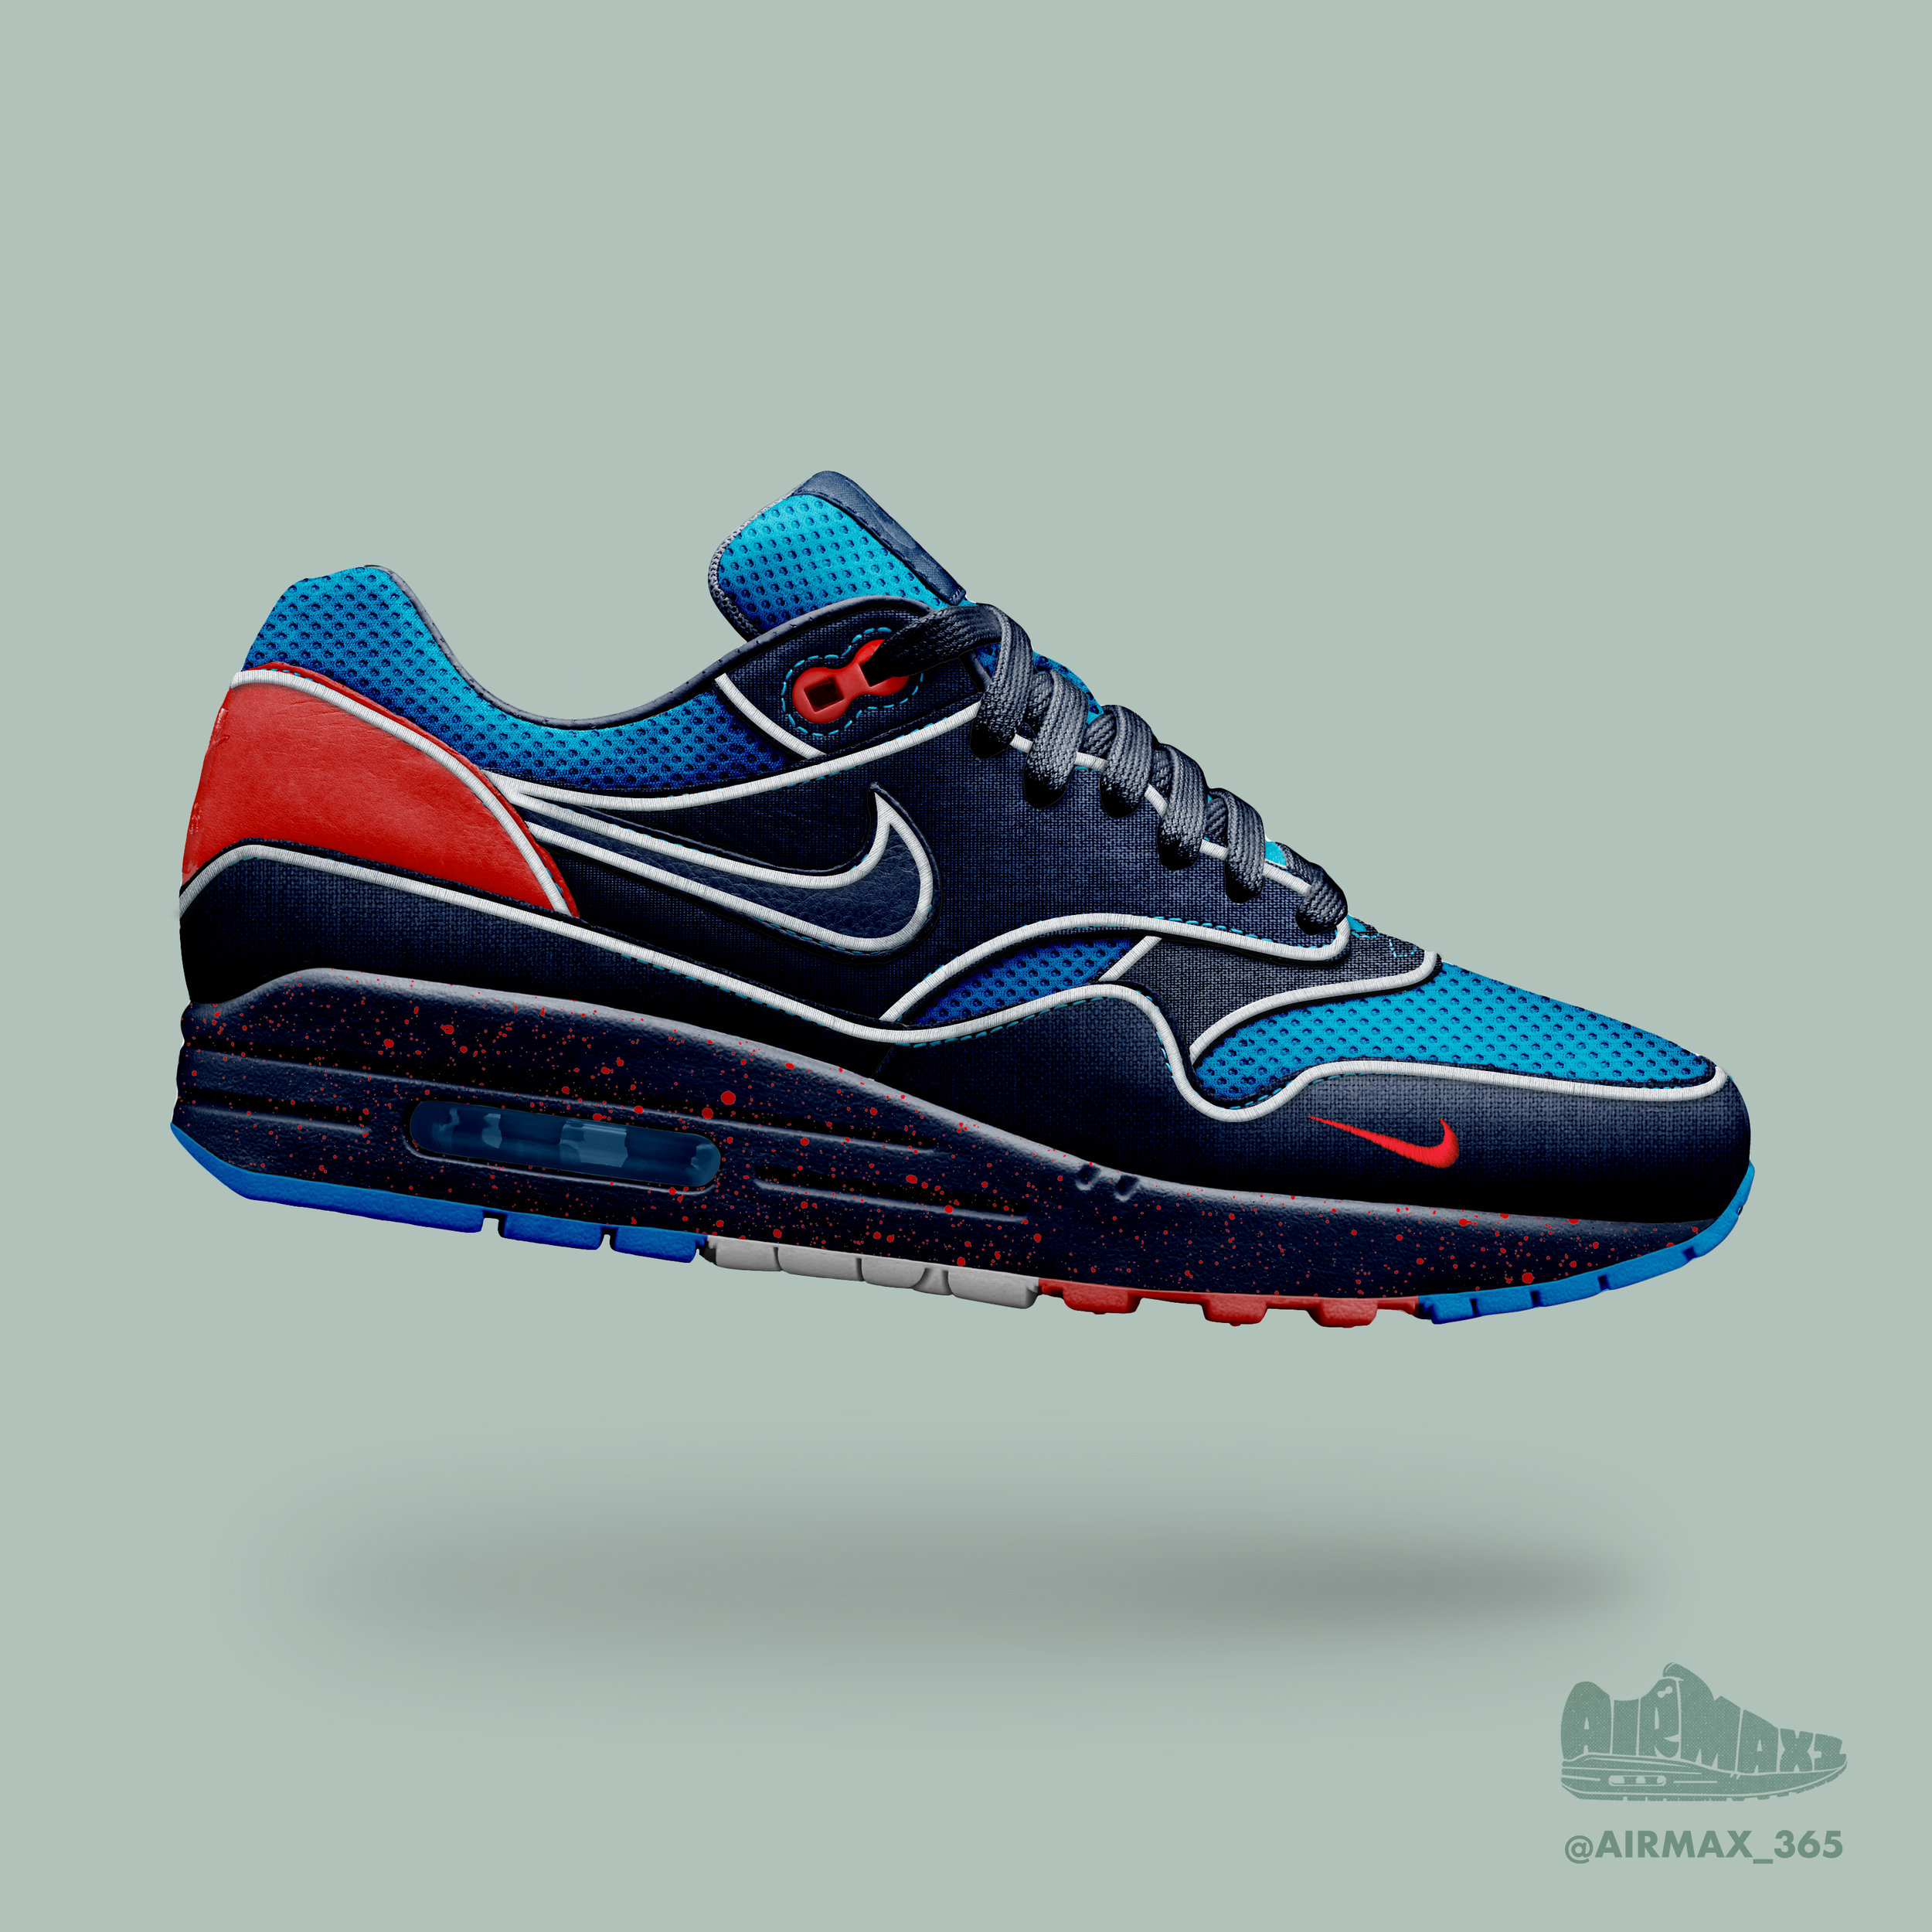 Day 228: Air Max 1 Prussian Blue